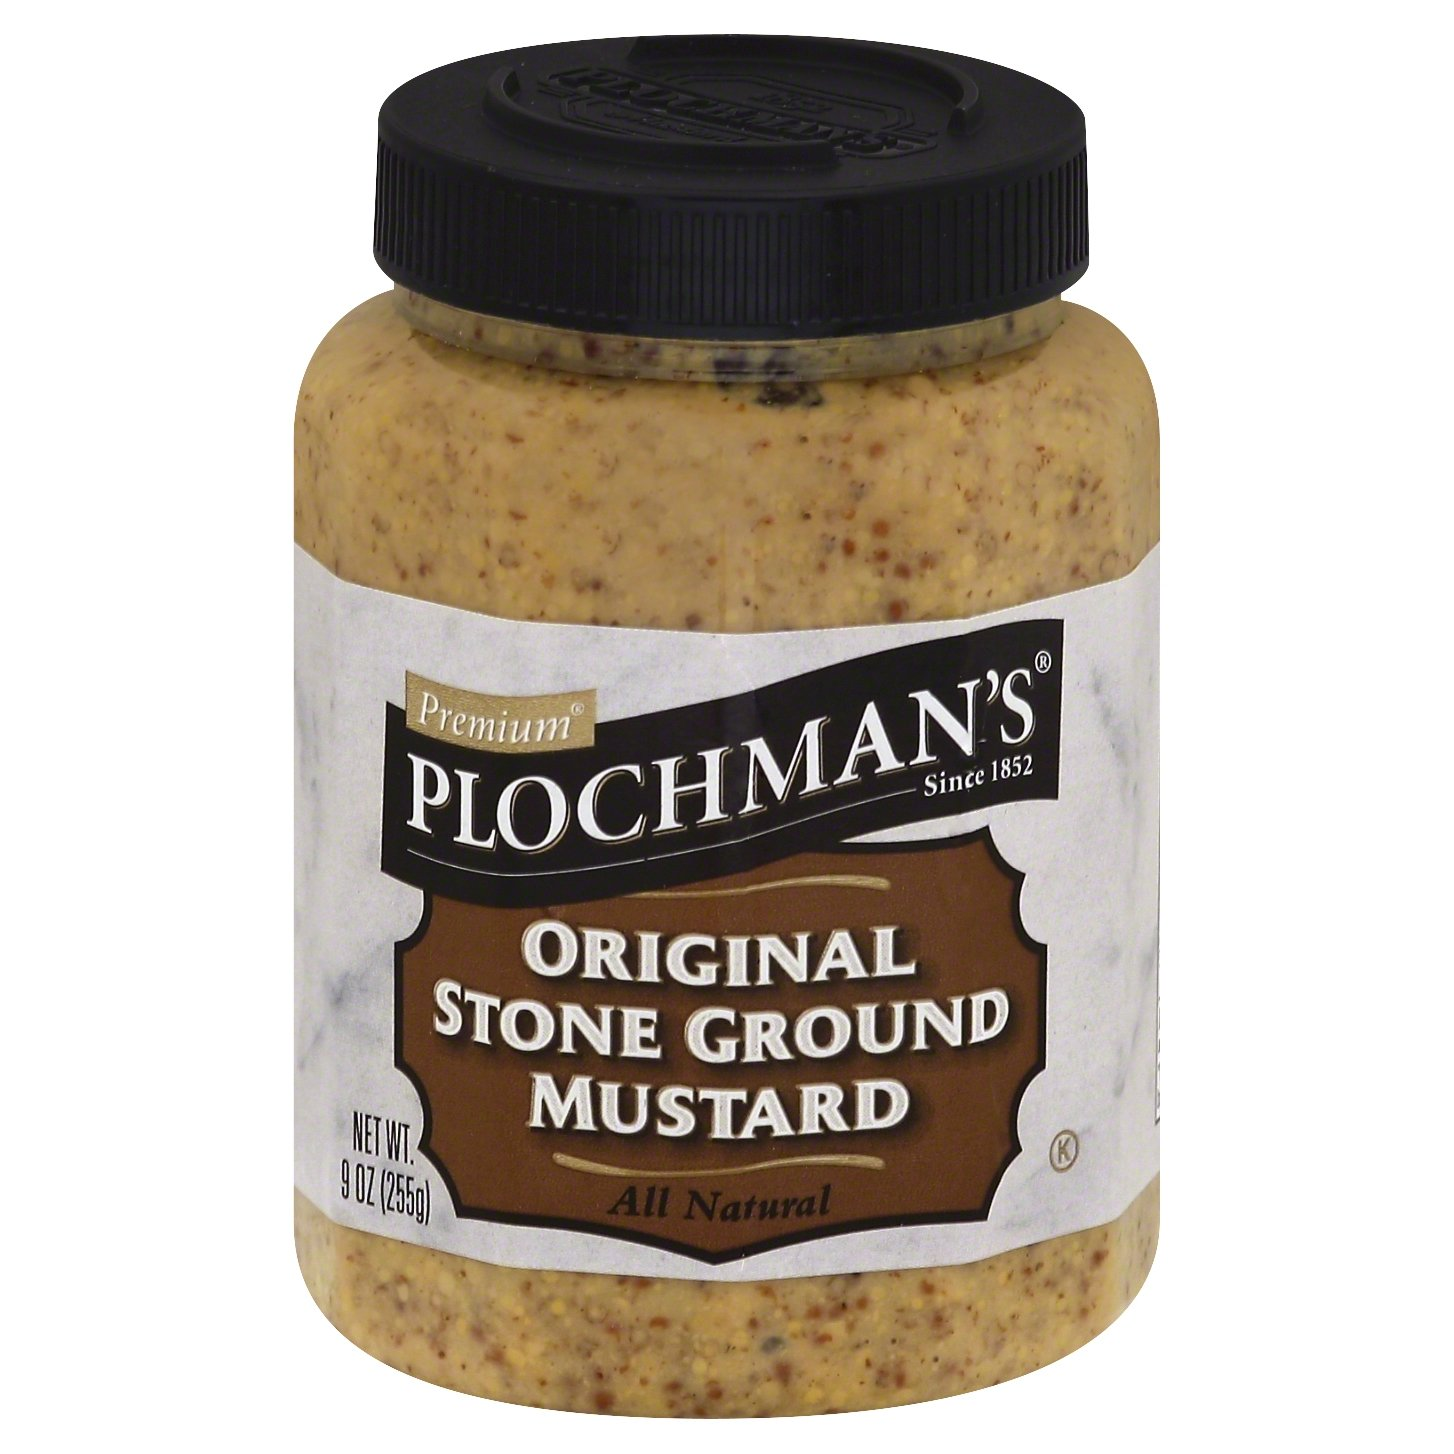 Plochman's Natural Stone Ground Mustard, 9-Ounce Jars (Pack of 12)